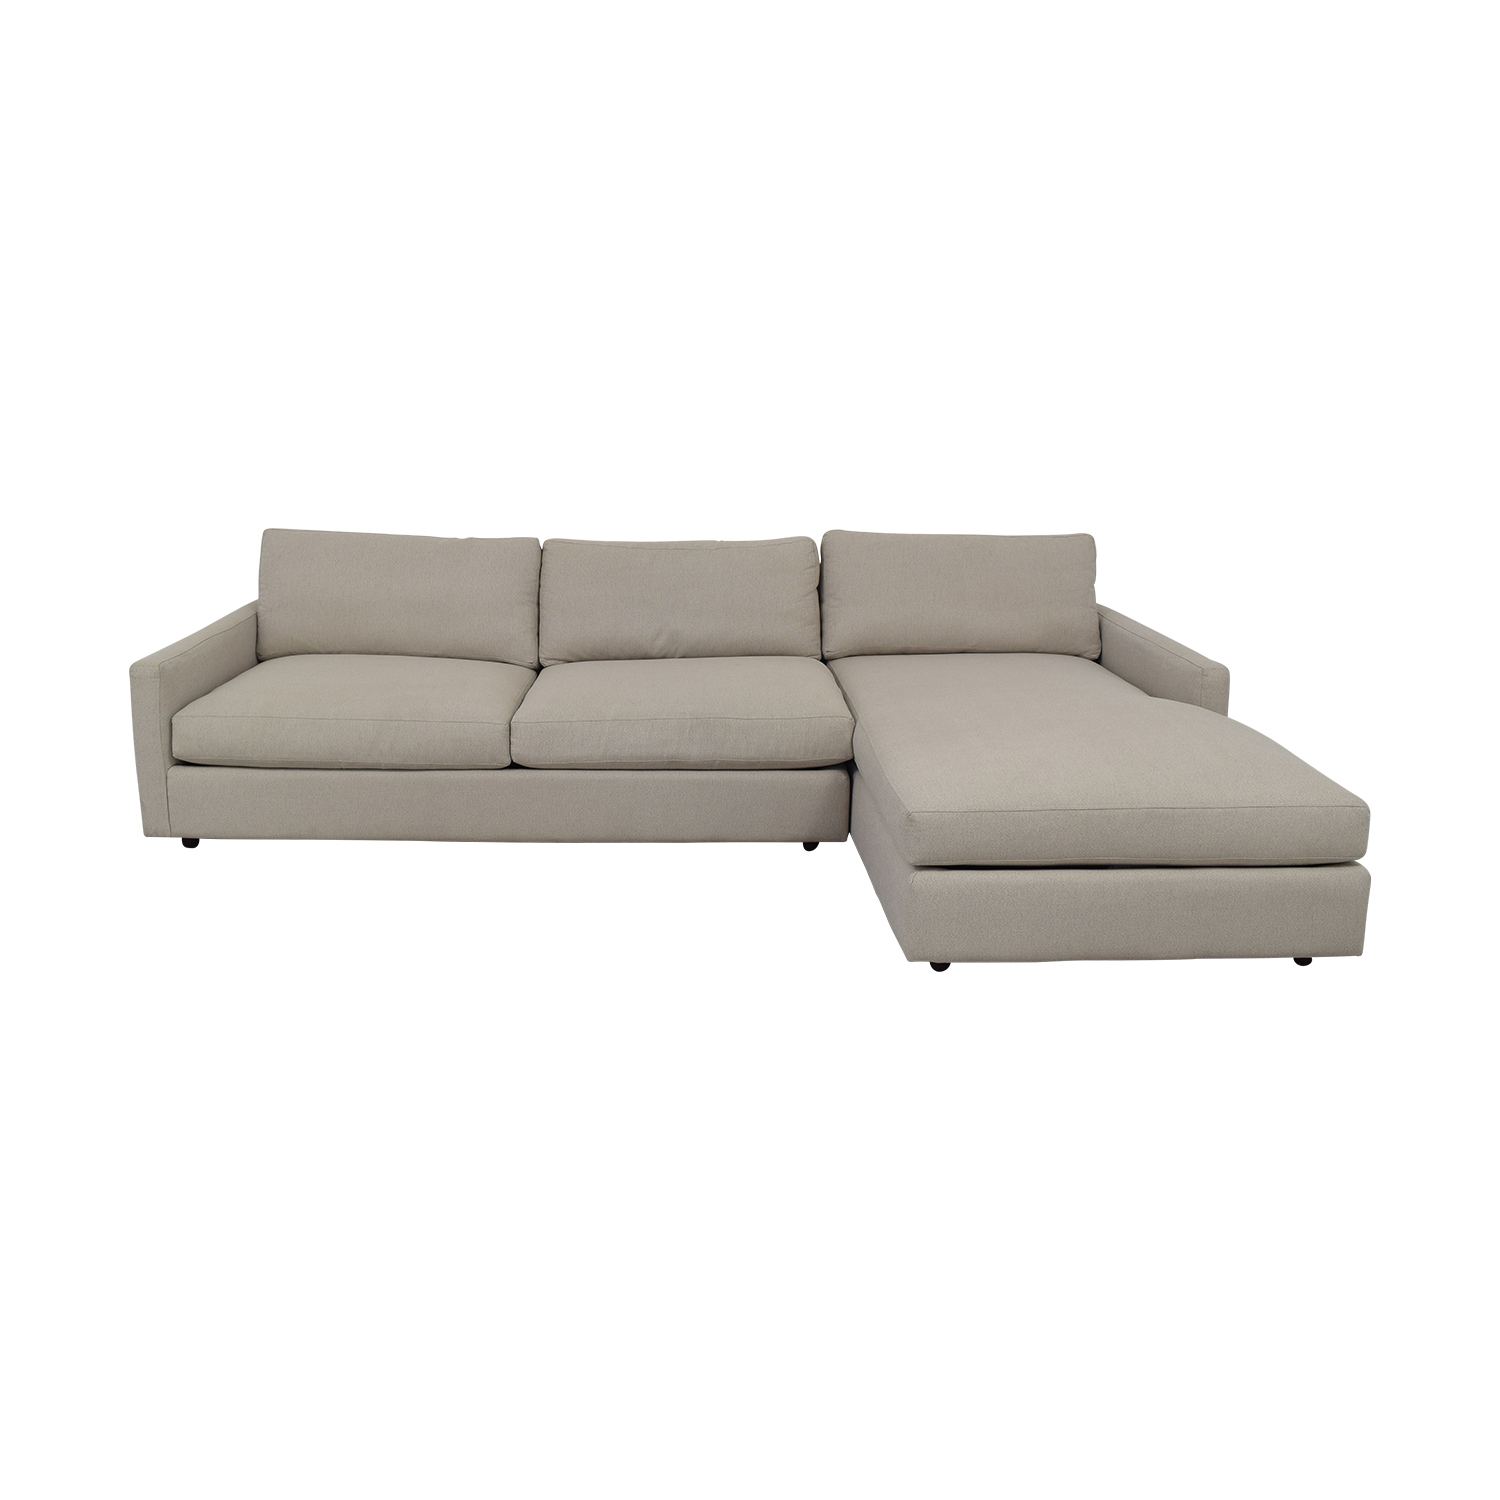 buy Room & Board Linger Sofa with Chaise Room & Board